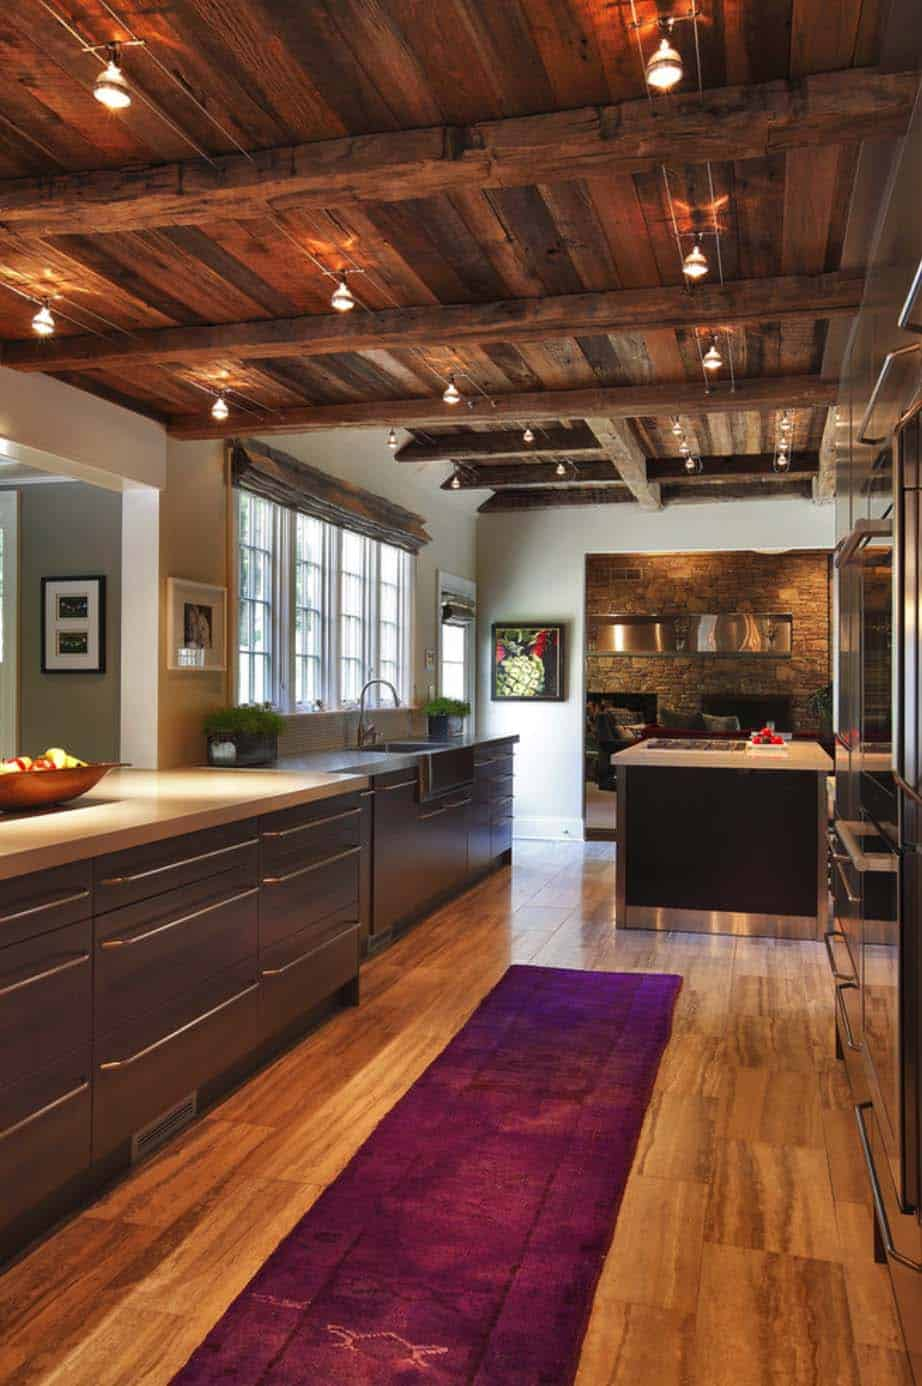 Farm House Renovation At Home Design 05 1 . Above: The Kitchen Features A  Gorgeous Modern Rustic Aesthetic.